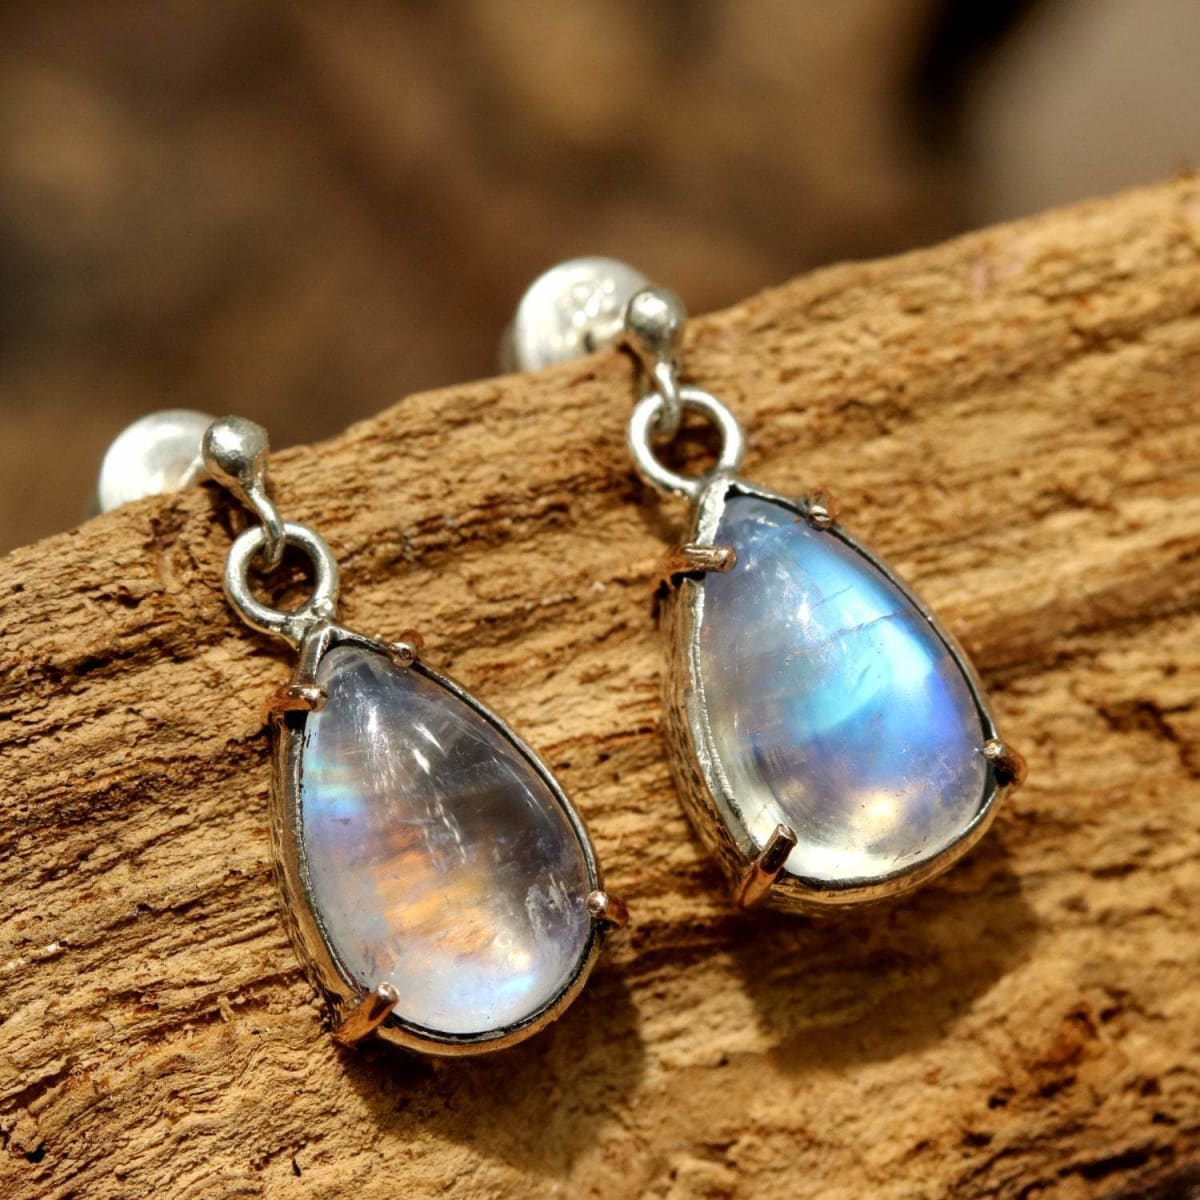 Tiny Moonstone teardrop cabochon earrings in silver bezel and rose gold prong with sterling post style - by Metal Studio Jewelry